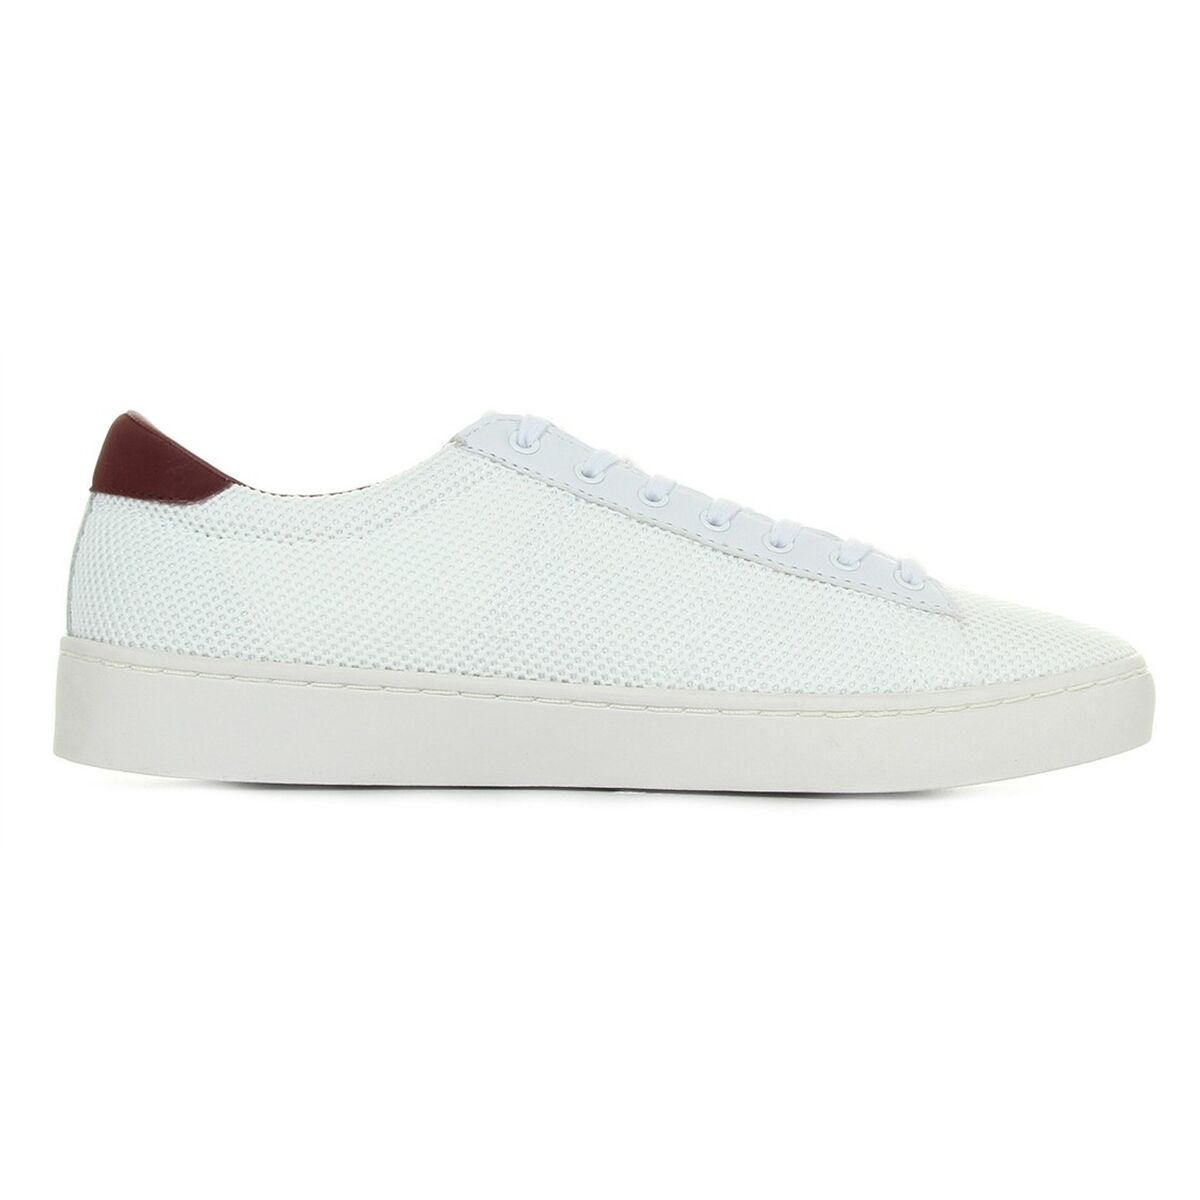 Fred Perry Men Shoes B2013-134 White Sneakers Spencer Mesh B2013-134 Shoes  NEW 56668f